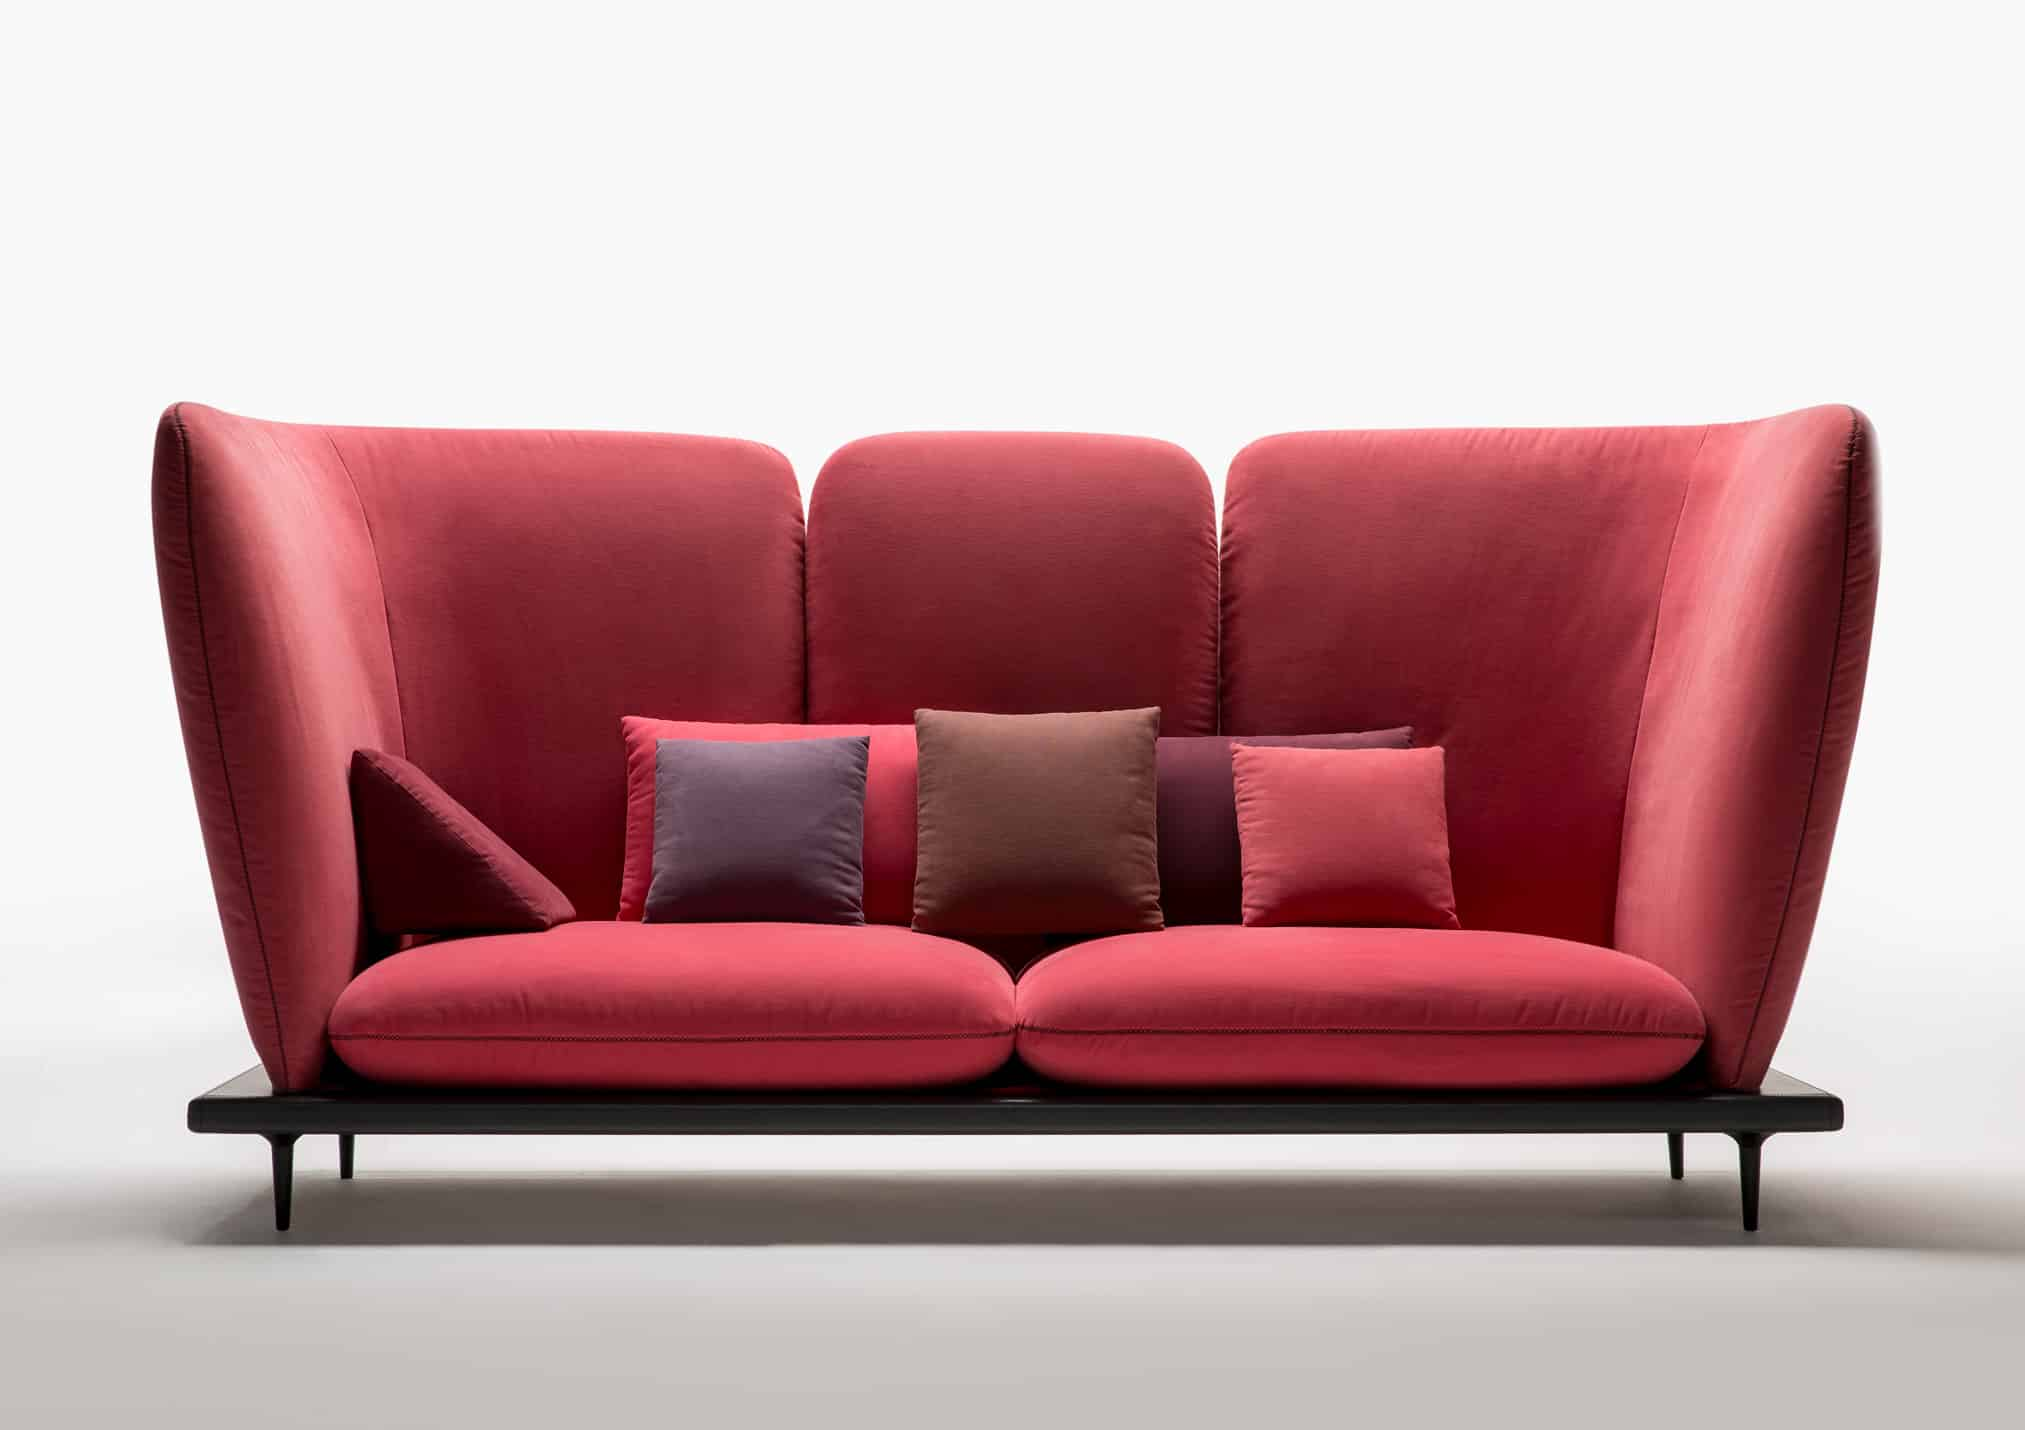 designer sofa furniture squashy sofas uk 40 elegant modern for cool living rooms